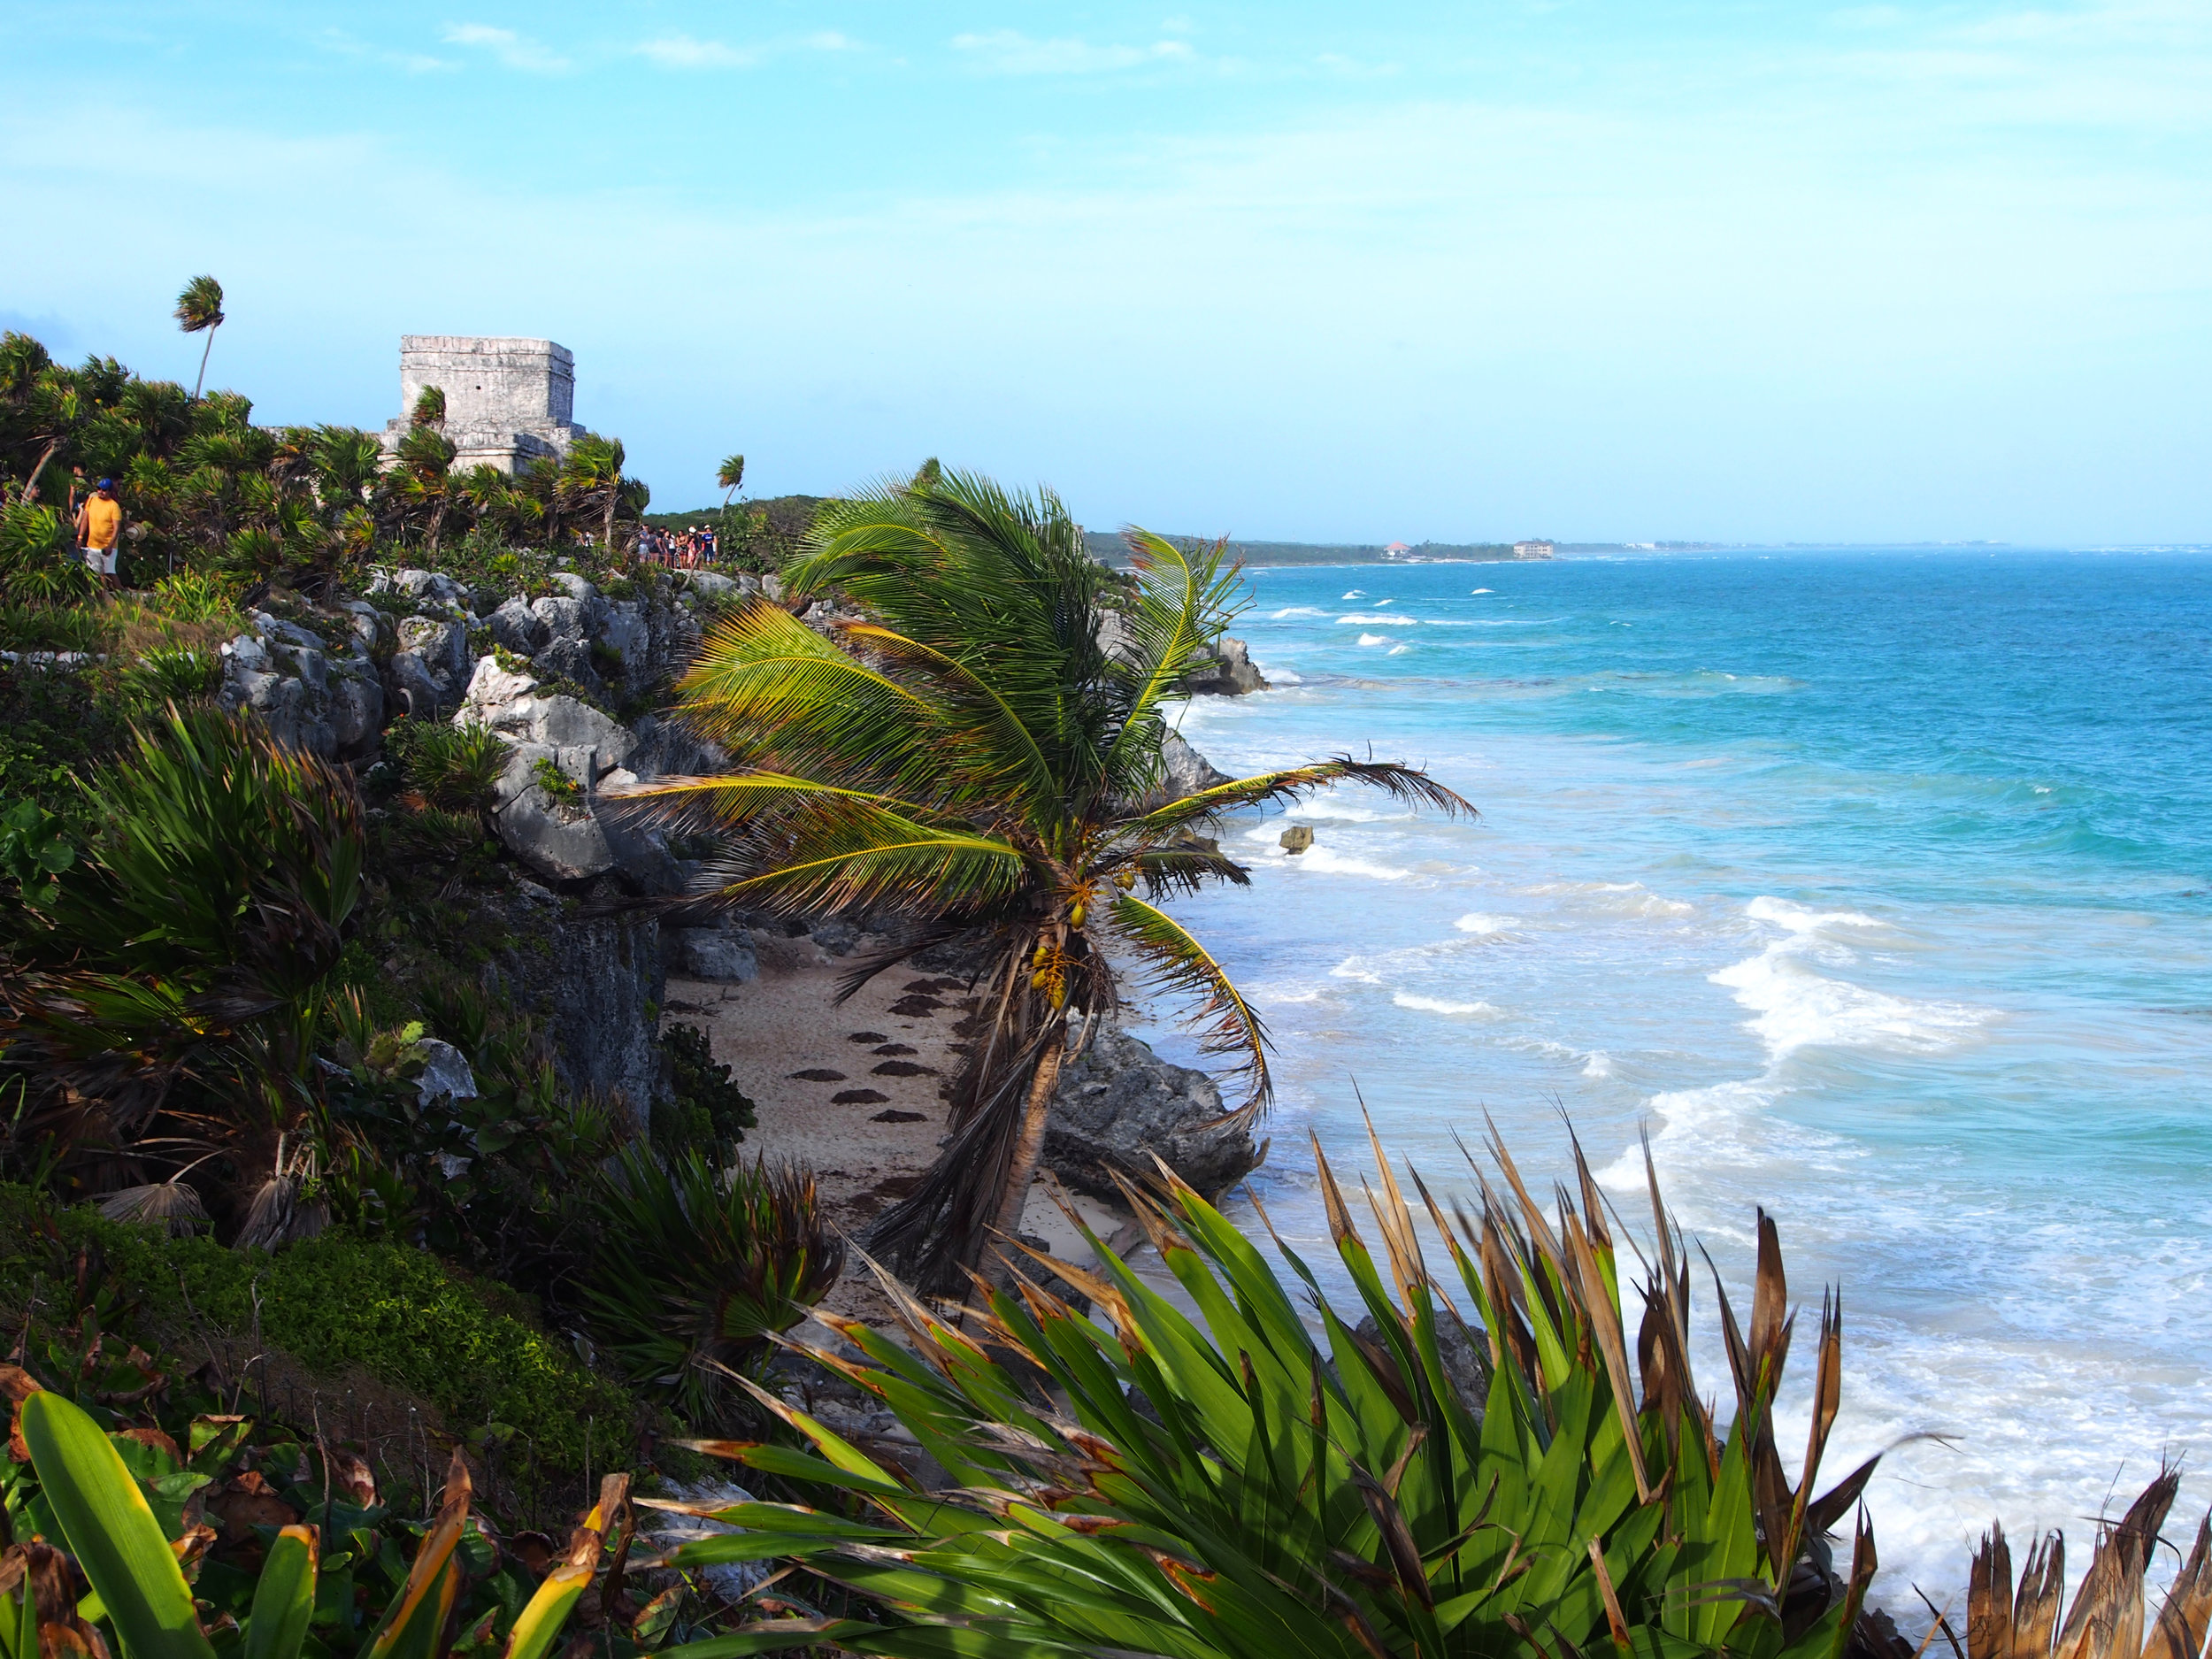 Tulum ruins view from the cliffs overlooking the Caribbean ocean